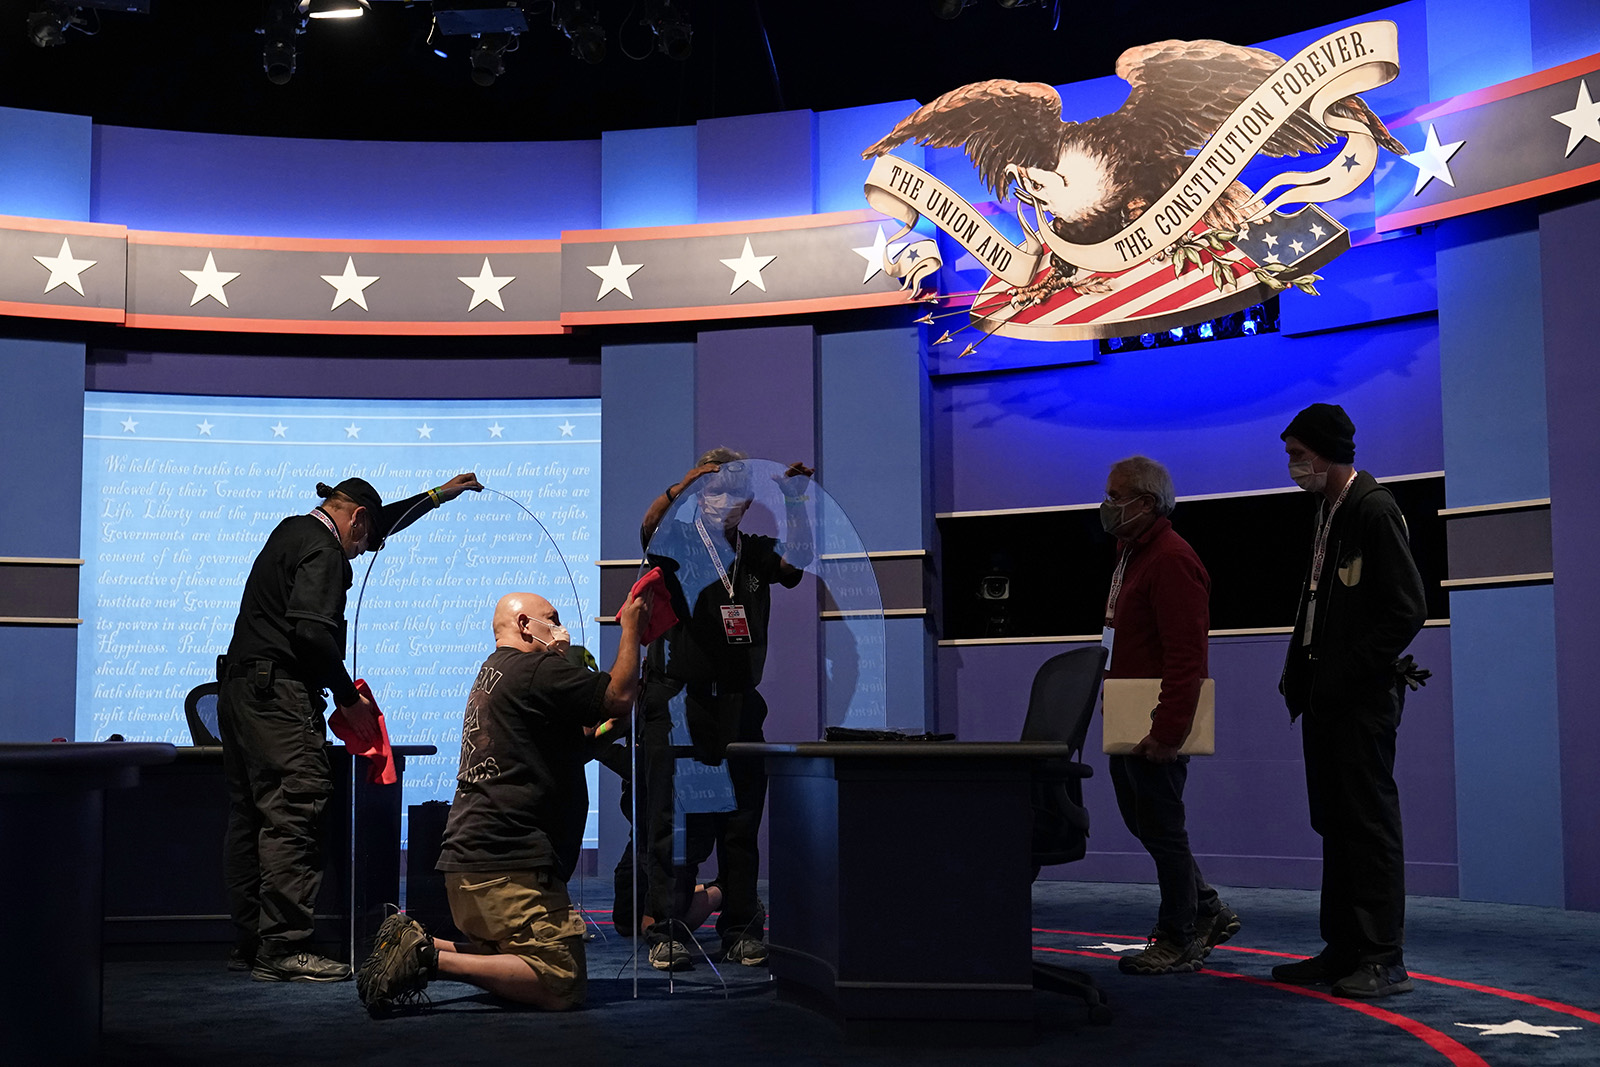 Workers clean protective plastic panels onstage between tables for Vice President Mike Pence and Democratic vice presidential candidate, Sen. Kamala Harris, as preparations take place for the vice presidential debate at the University of Utah on Tuesday in Salt Lake City.